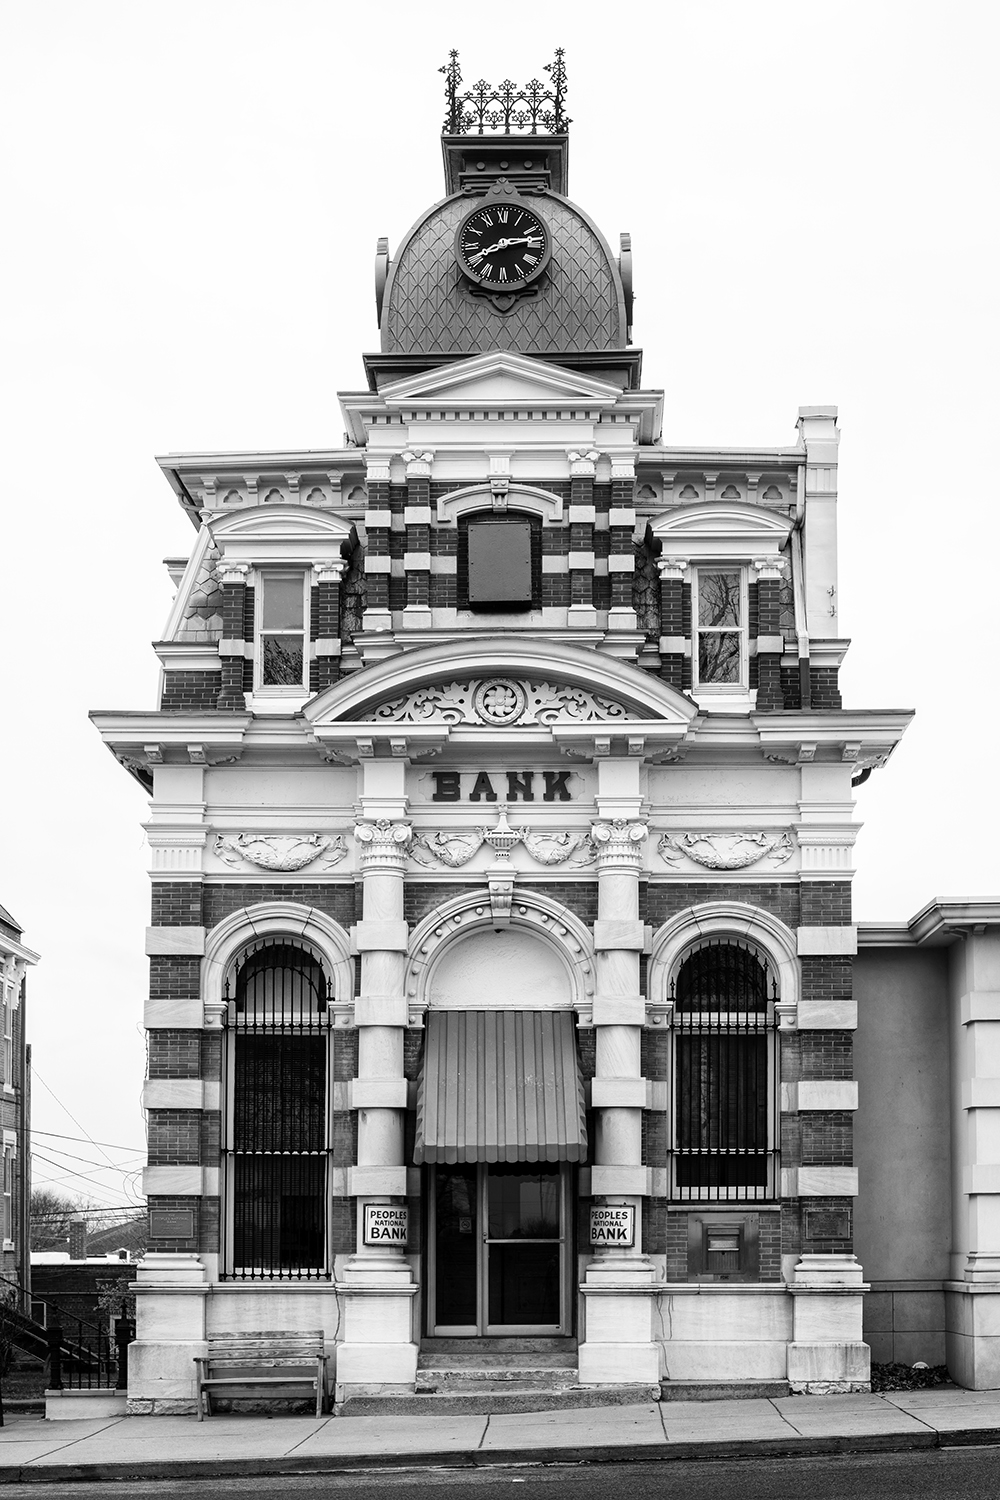 Historic Cloud State Bank Building in McLeansboro, Illinois - Black and White Photograph by Keith Dotson.